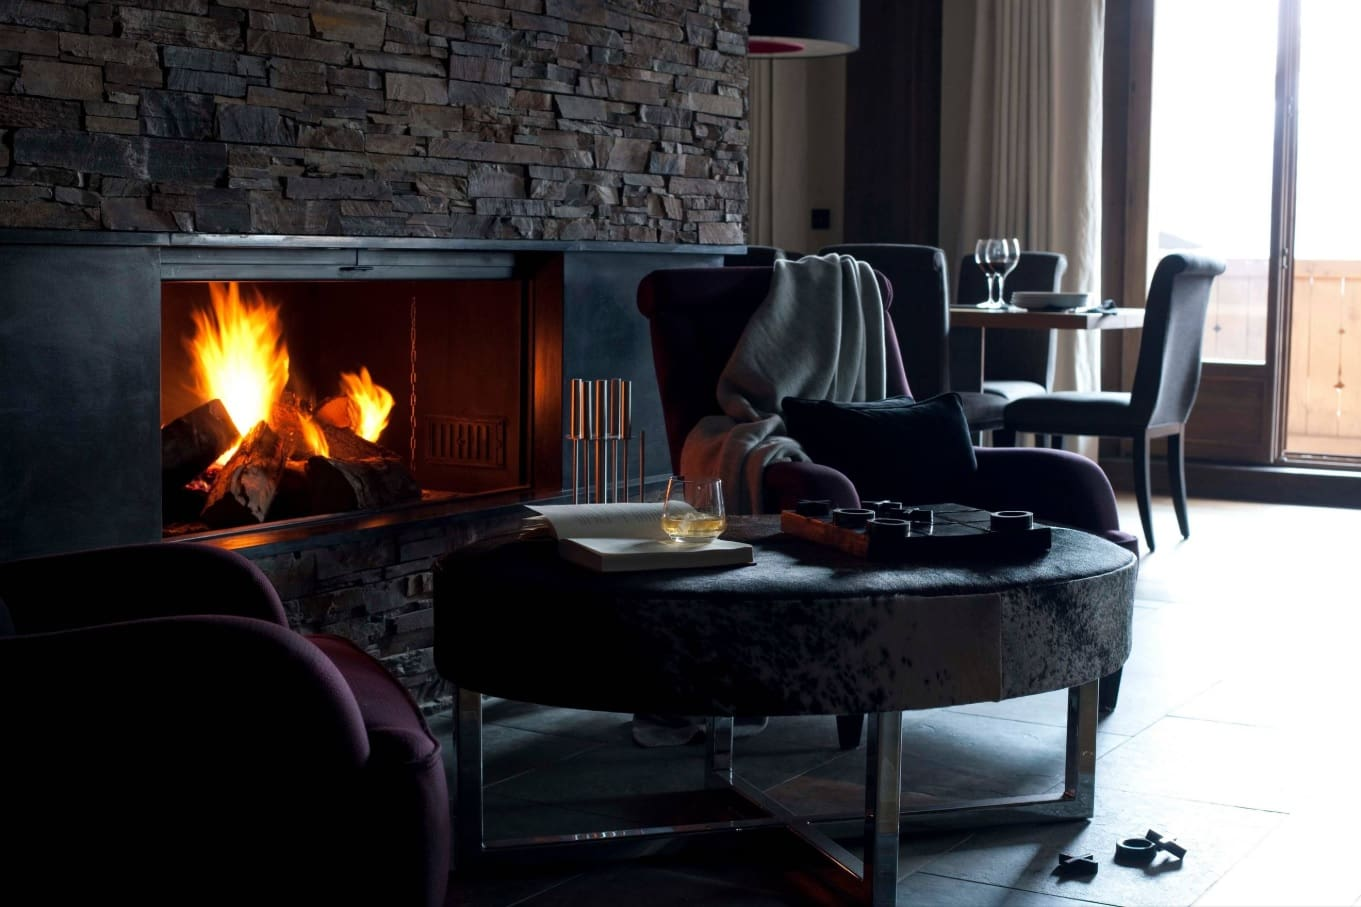 Chalet Style Interior Decoration: Relevance and Finishing Advice. Dark interior with the fireplace and cozy rugs